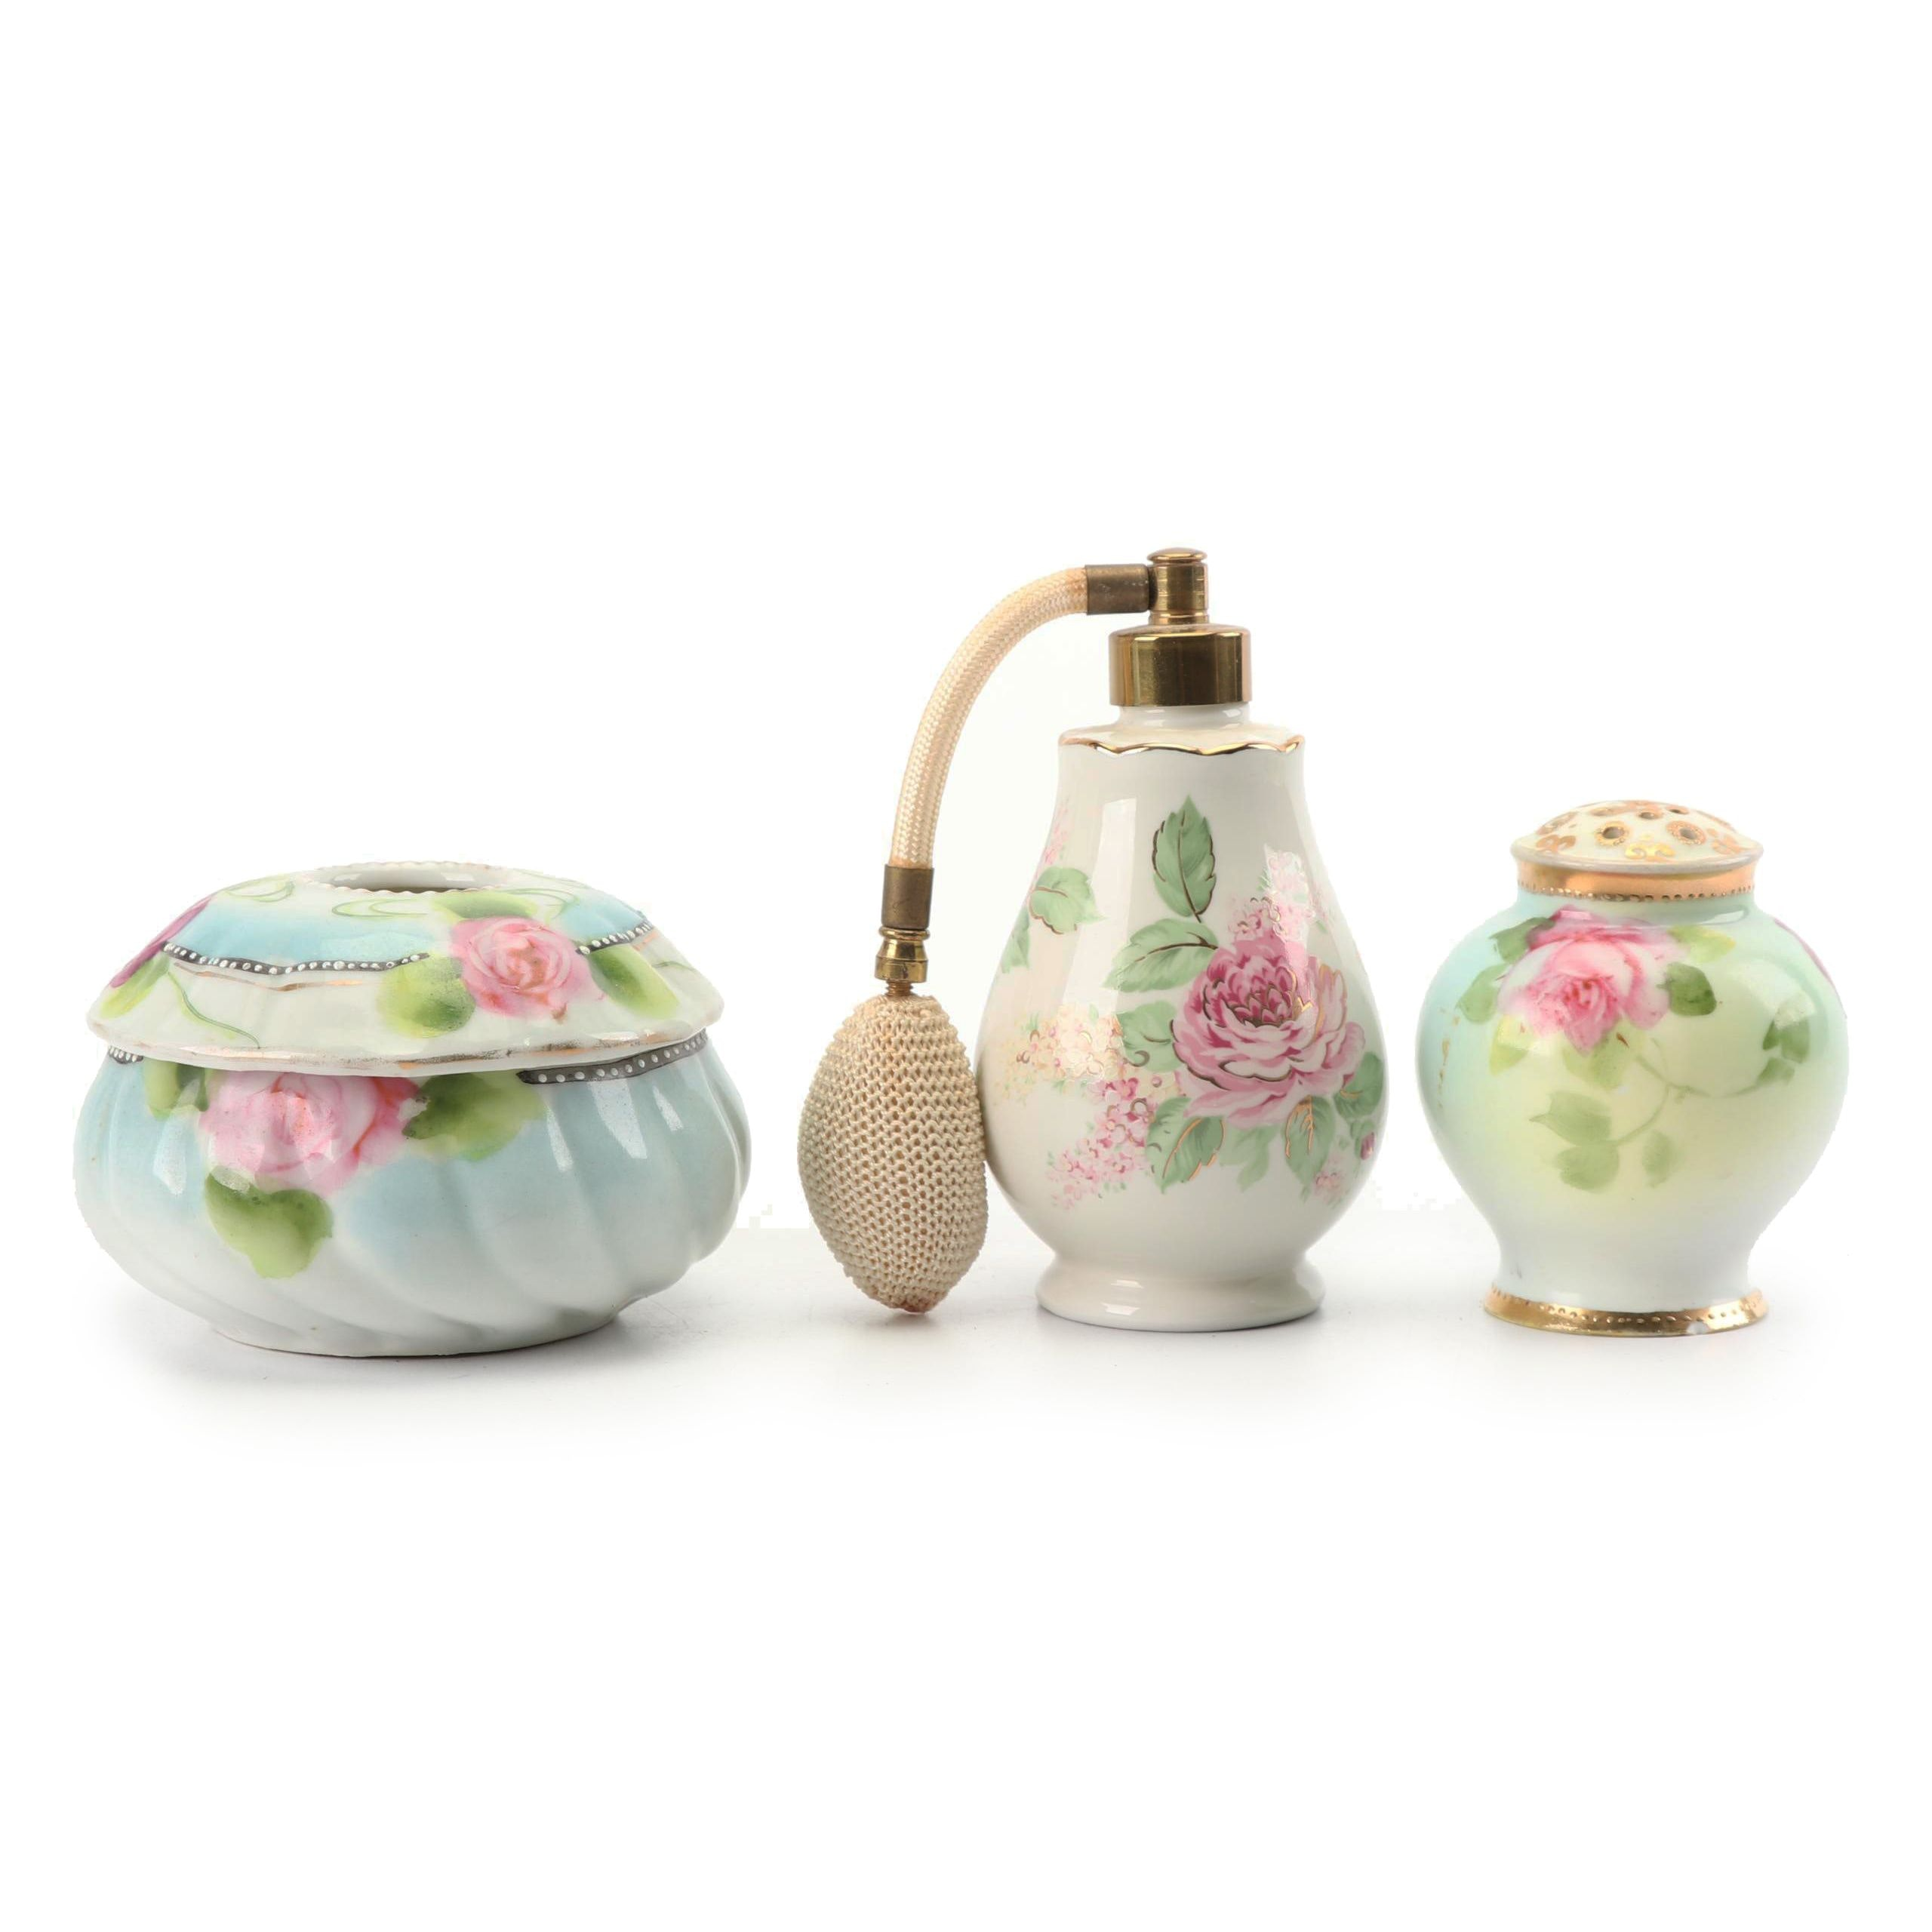 Nippon Hand-Painted Hair Receiver with Hat Pin Holder and Perfume Bottle